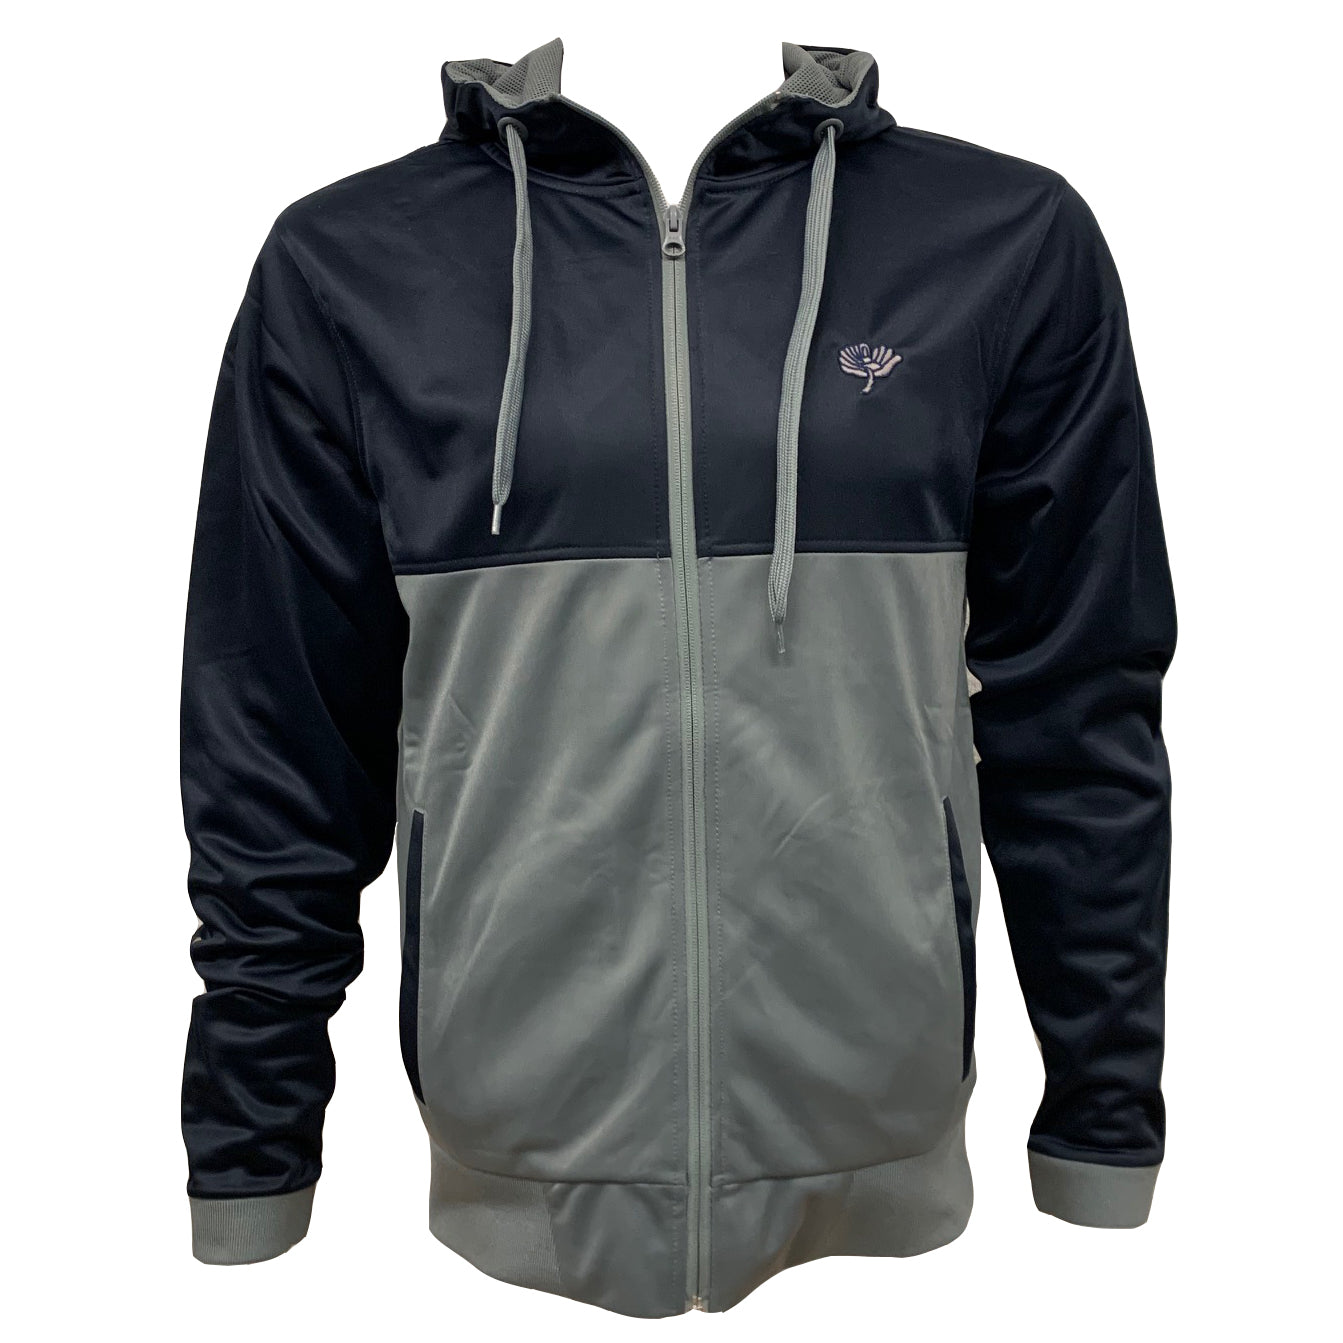 Sitwell full zip jacket